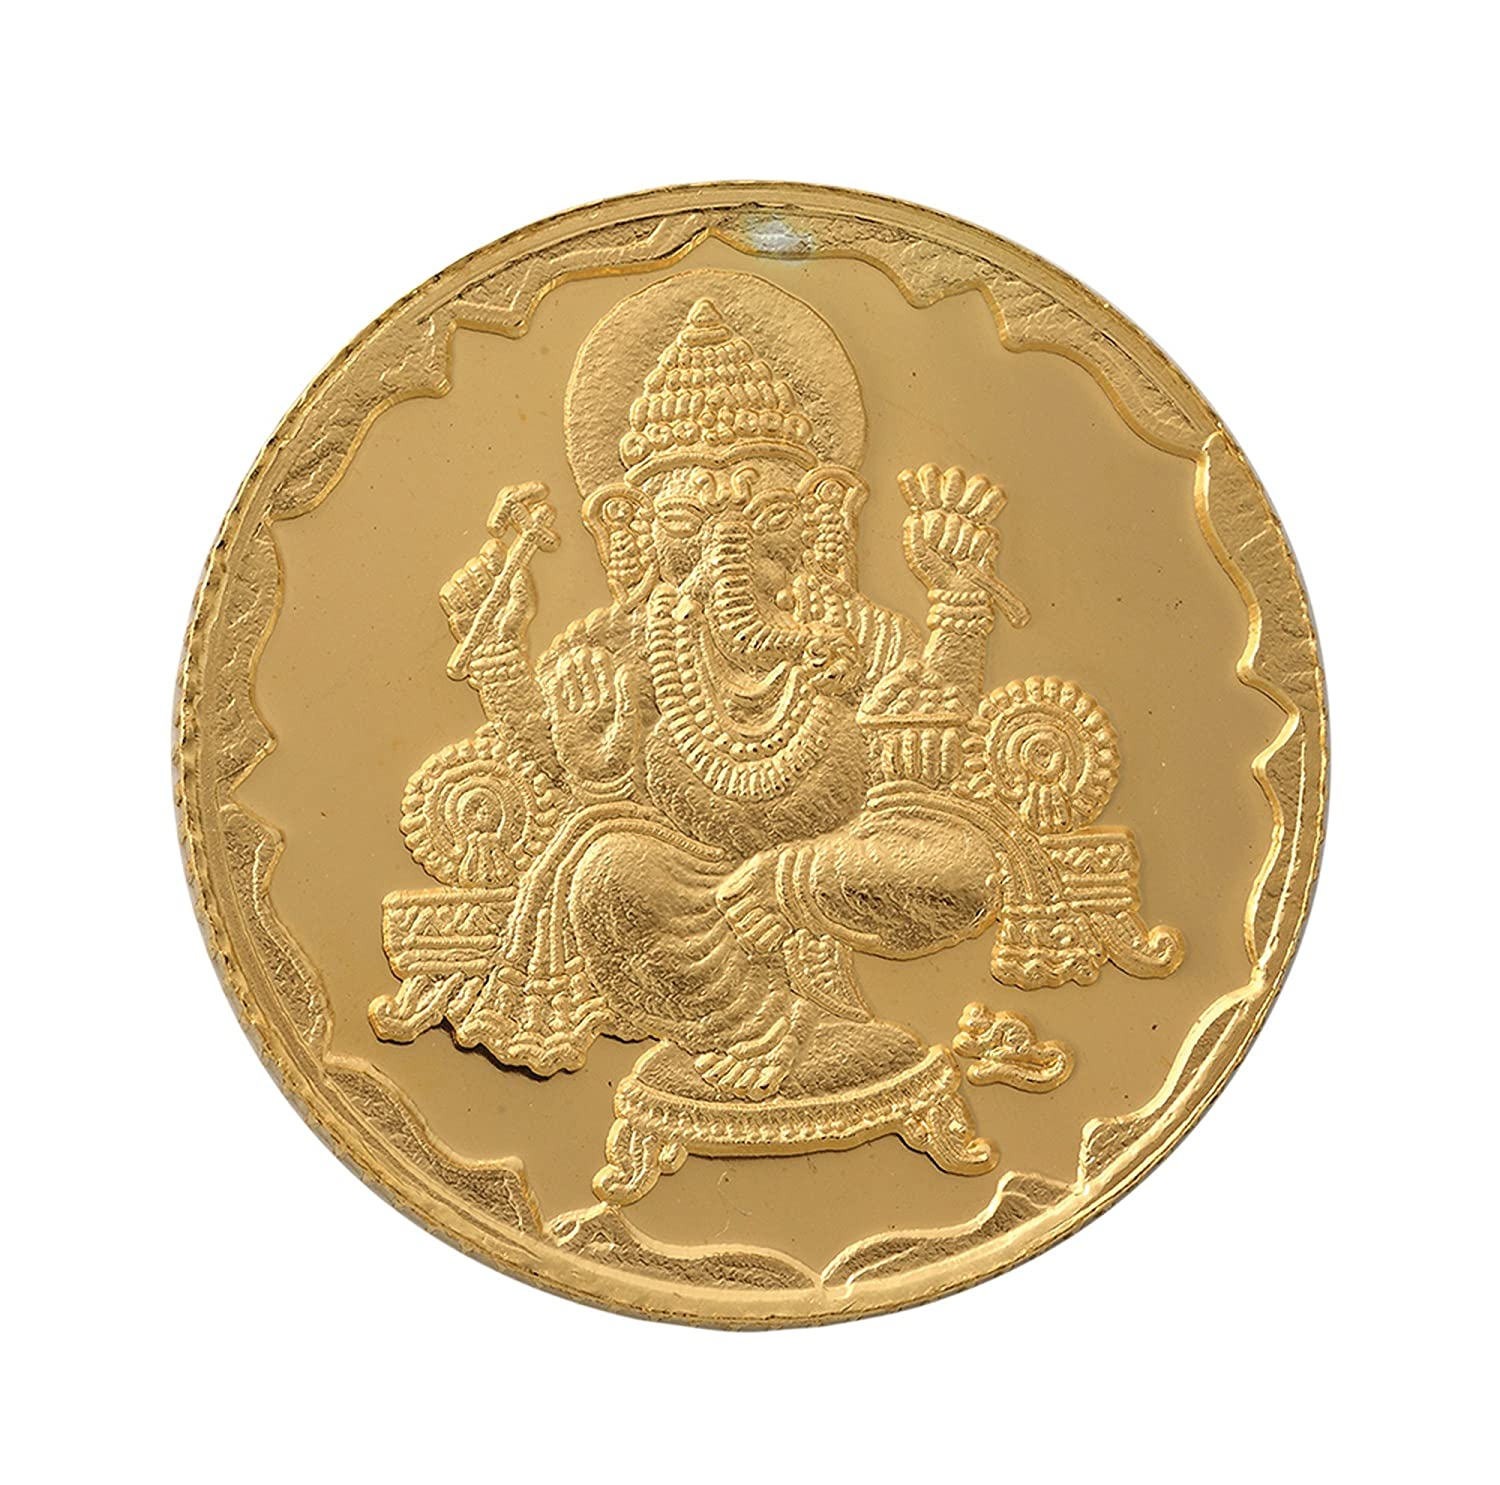 8 Gm Gold Coin Price In Bangalore Star Coin Bank 2018